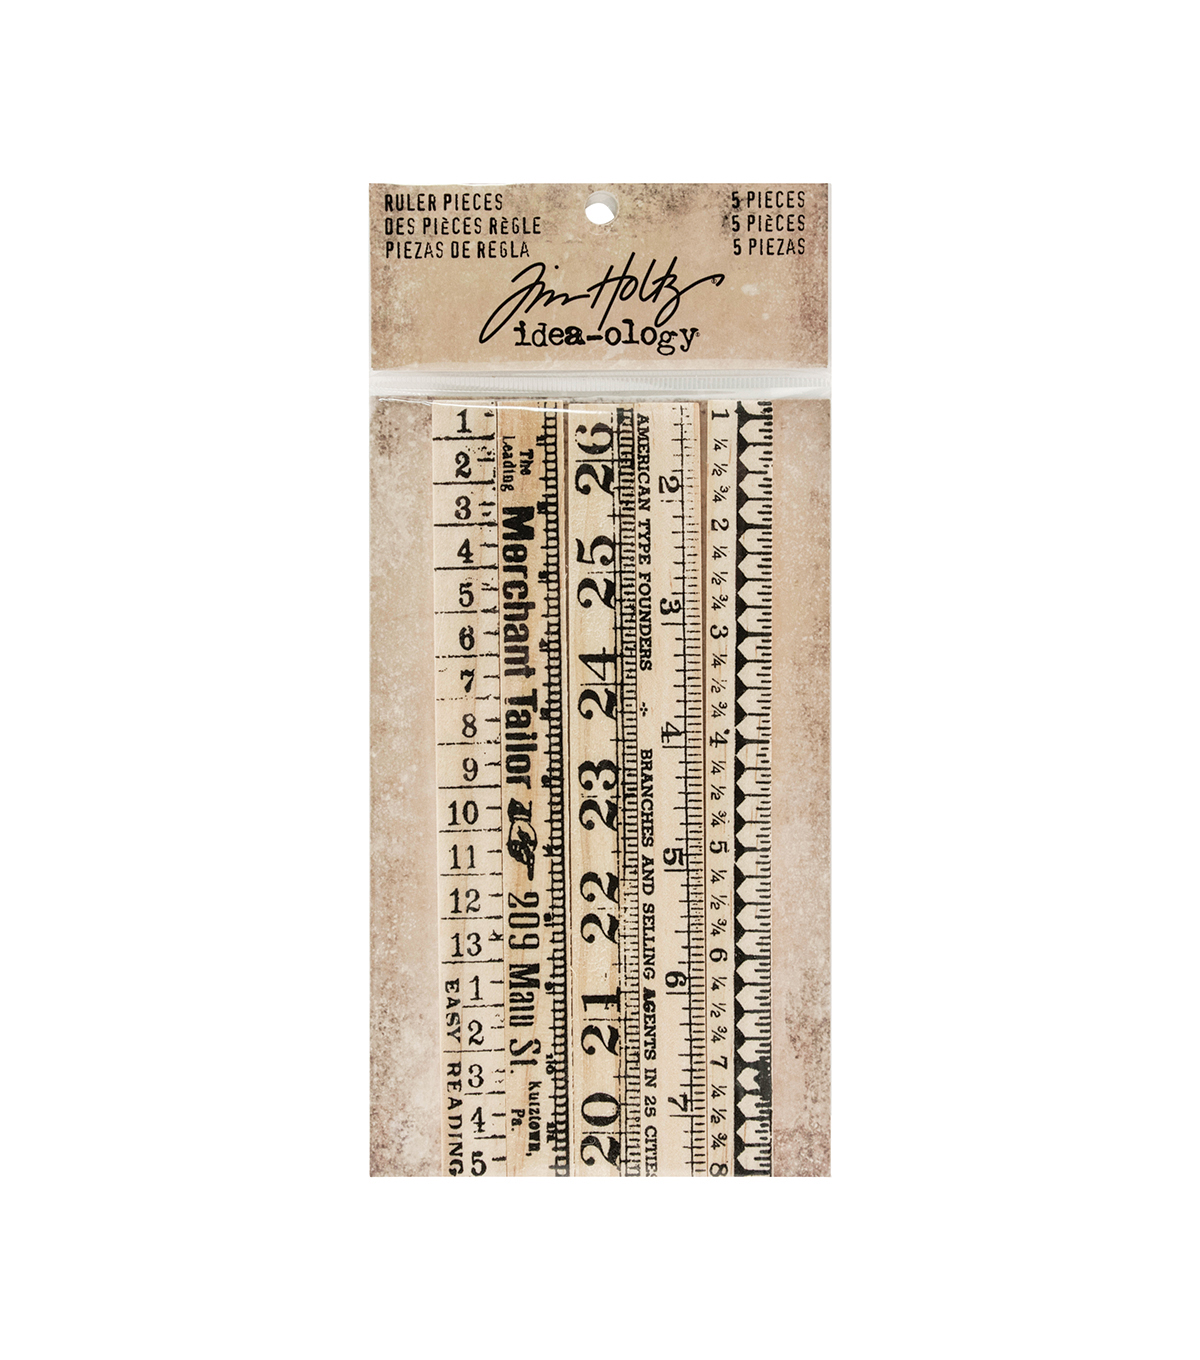 Tim Holtz Idea-ology Pack of 5 6\u0027\u0027 Ruler Pieces